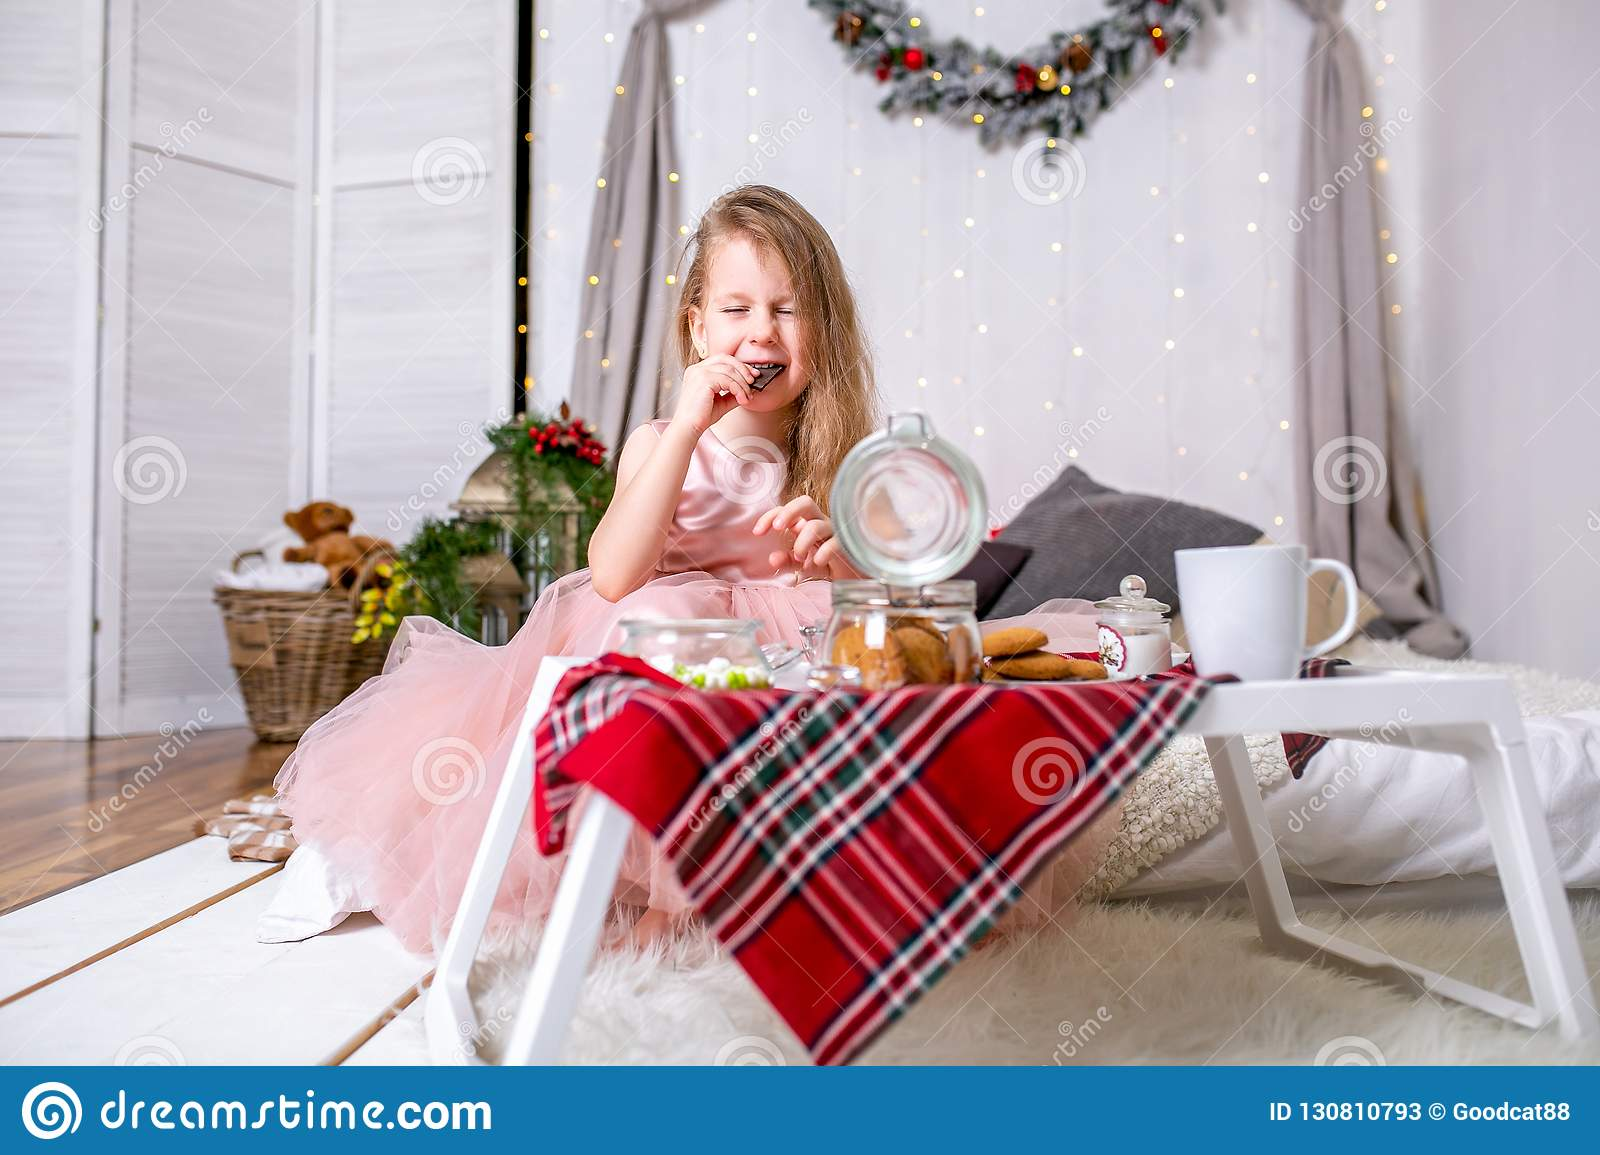 Pretty Little Girl 4 Years Old In A Pink Dress Child The Christmas Room With Bed Eating Candy Chocolate Cookies And Drink Stock Image Of 130810793